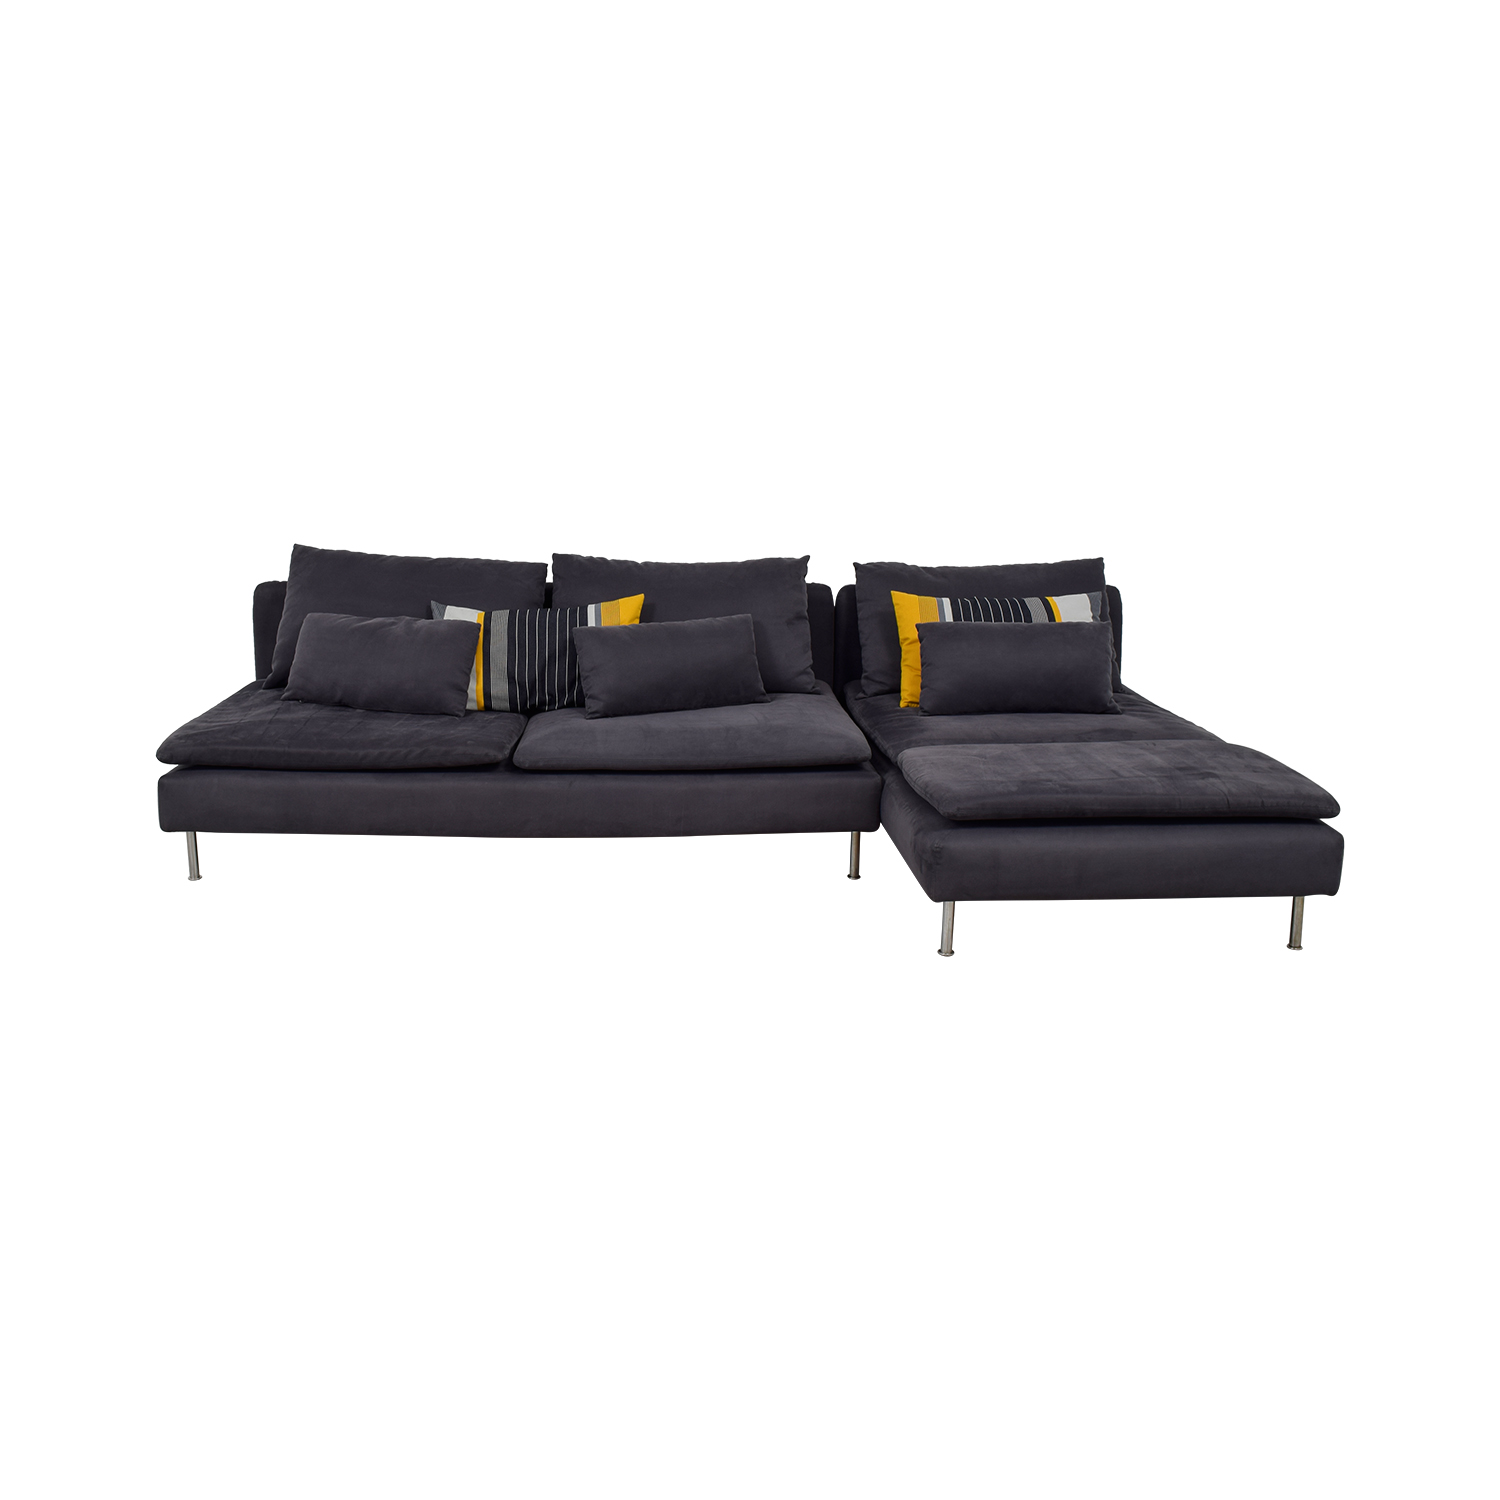 43% OFF - IKEA IKEA Soderhamn Sectional with Chaise / Sofas